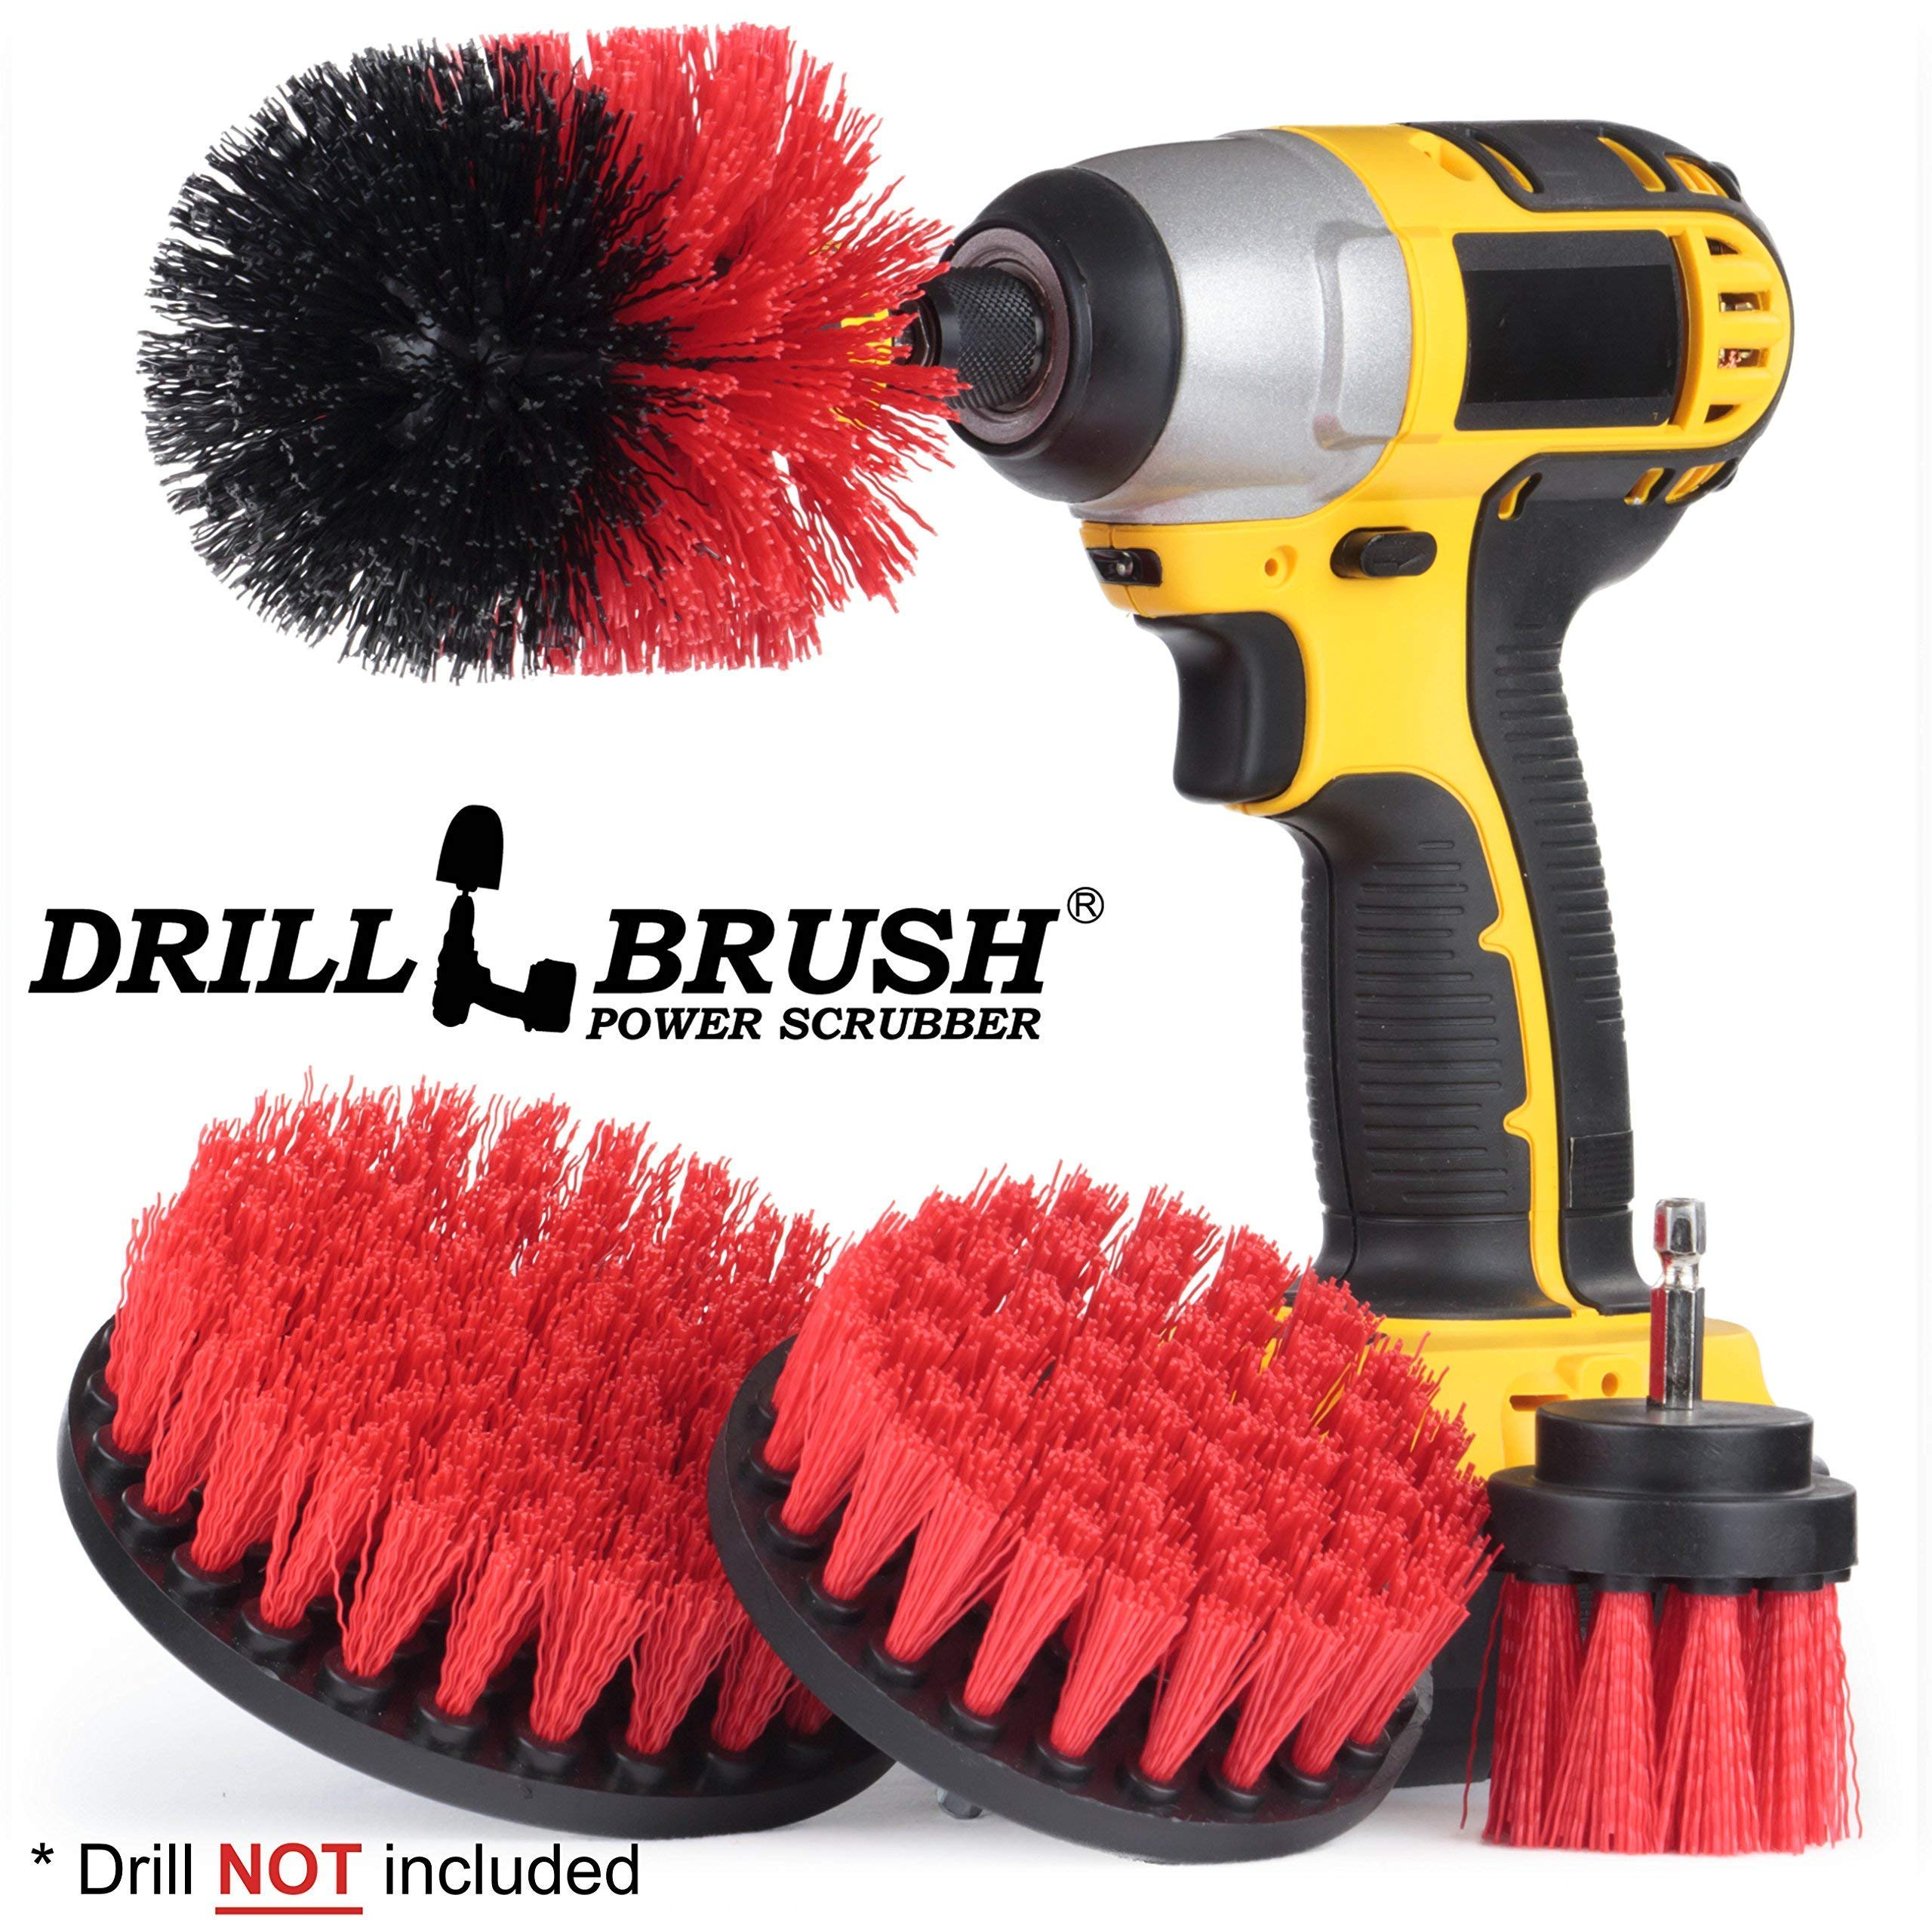 Stiff Bristle 4 Piece Drill Brush Nylon Cordless Drill Powered Spinning Brush Heavy Duty Scrubbing by Drillbrush by Drillbrush (Image #1)